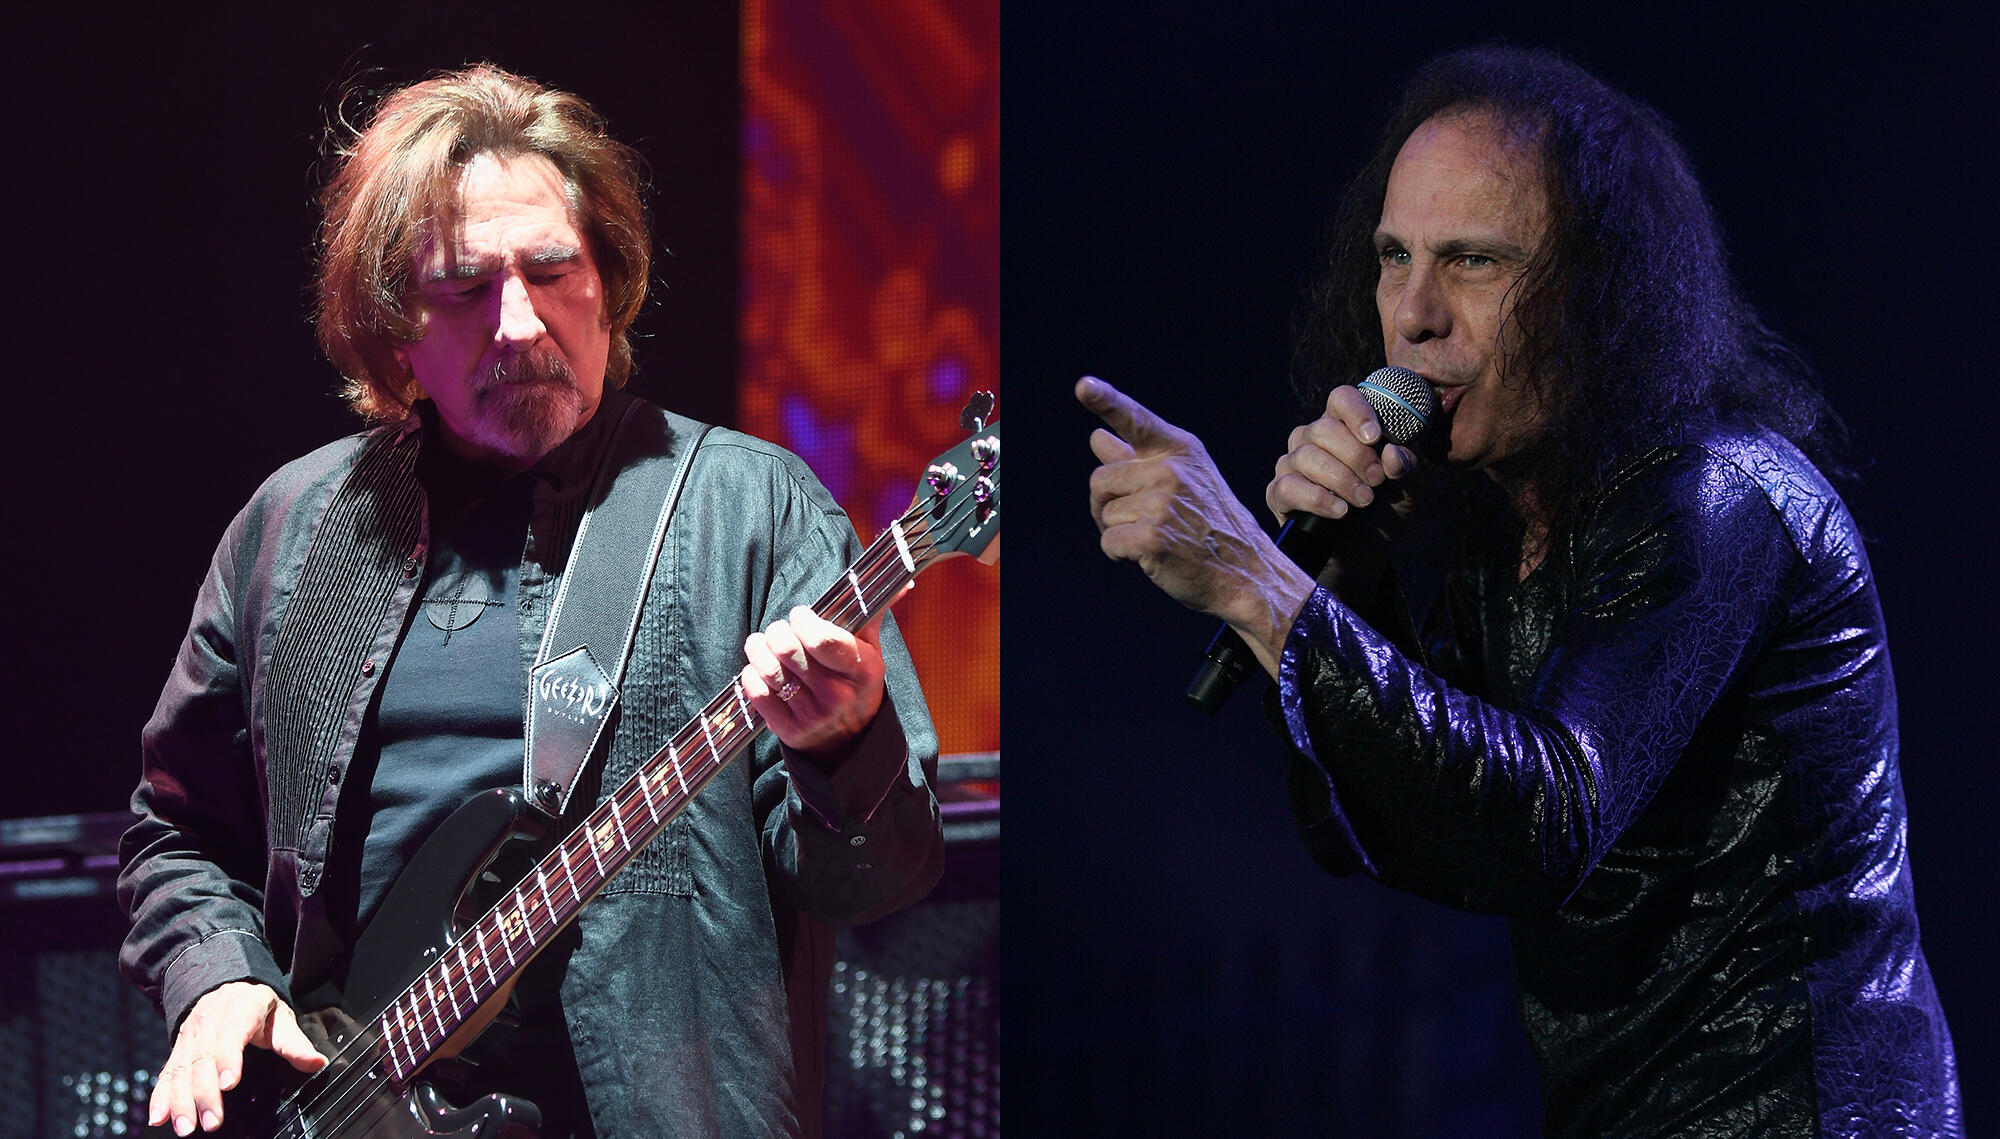 Black Sabbath's Only Request Of Dio On Second LP: 'No Rainbows, No Dragons' | iHeartRadio